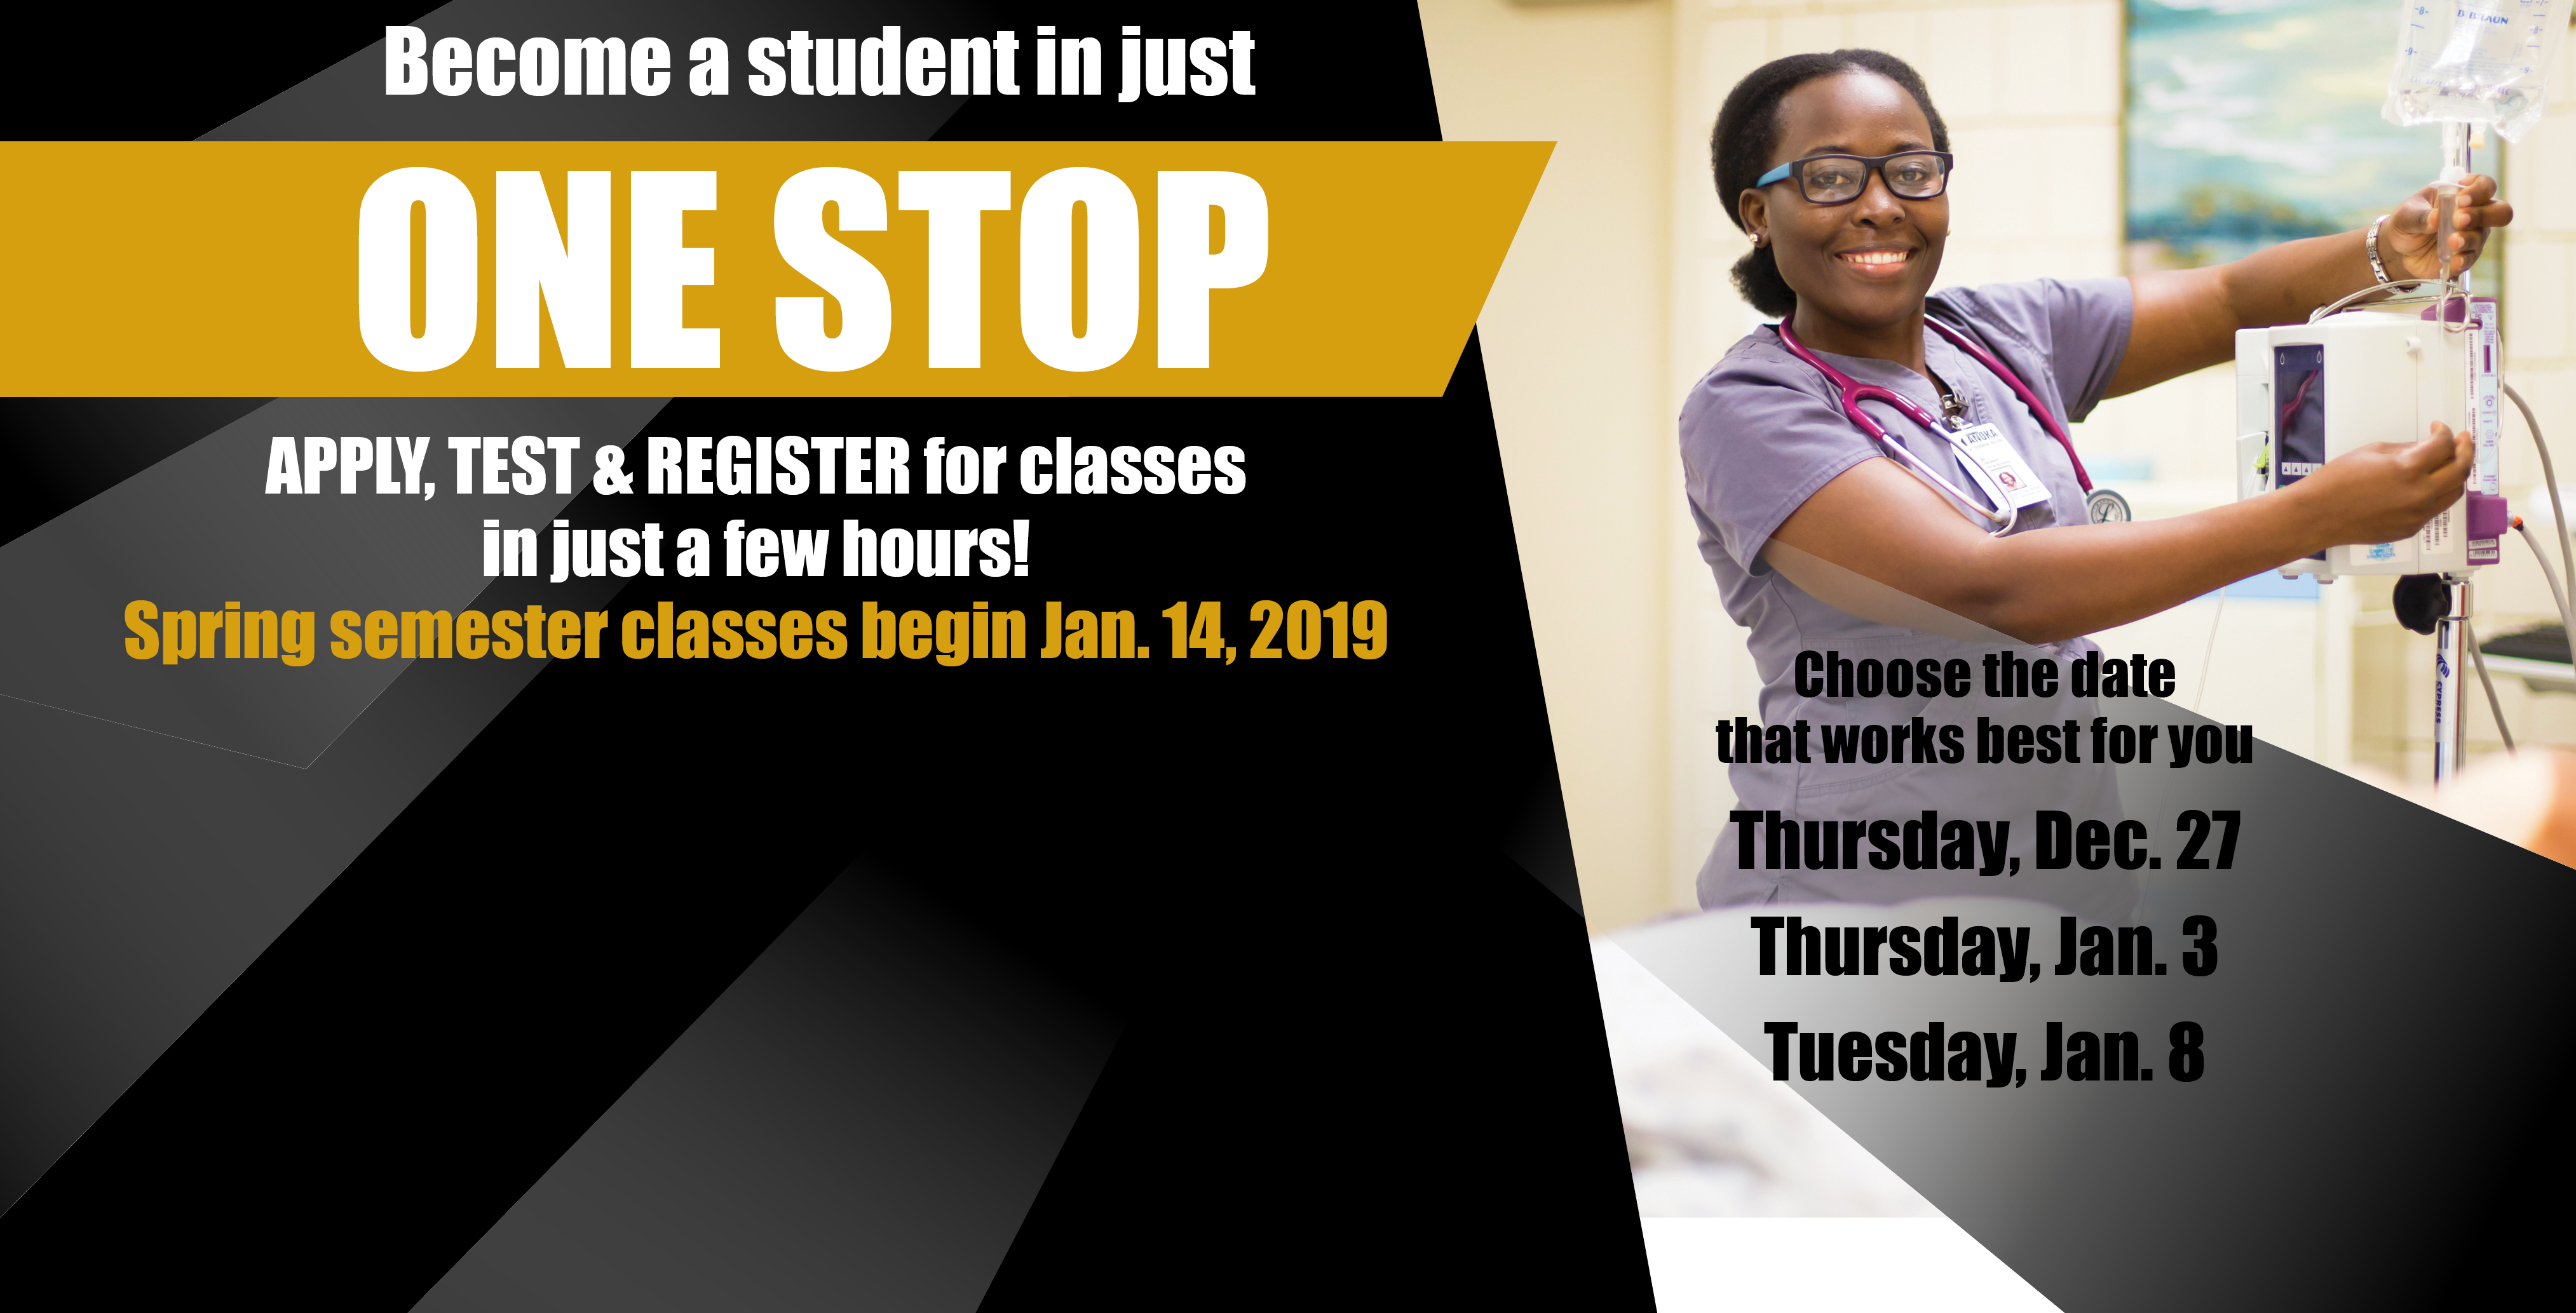 Become a student in just one stop. Apply, test, and register for classes in just a few hours! Spring semester classes begin Jan 14 2019. CHoose the date that works best for you. Thursday Dec 27, Thursday Jan 5, Tuesday Jan 8